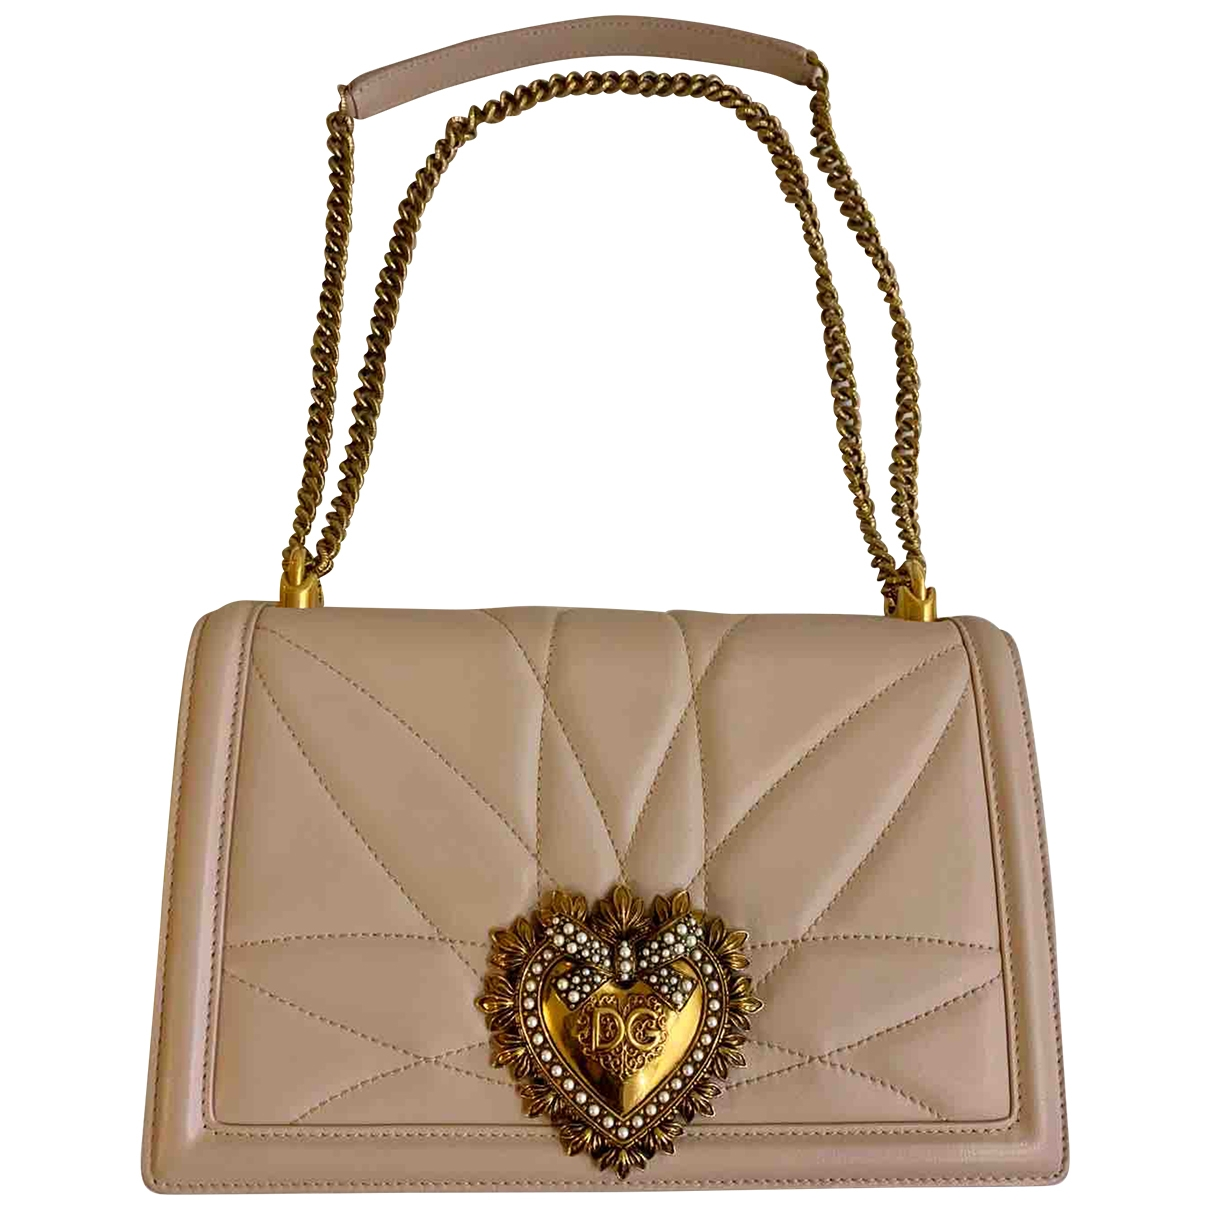 Dolce & Gabbana Devotion Pink Leather handbag for Women \N